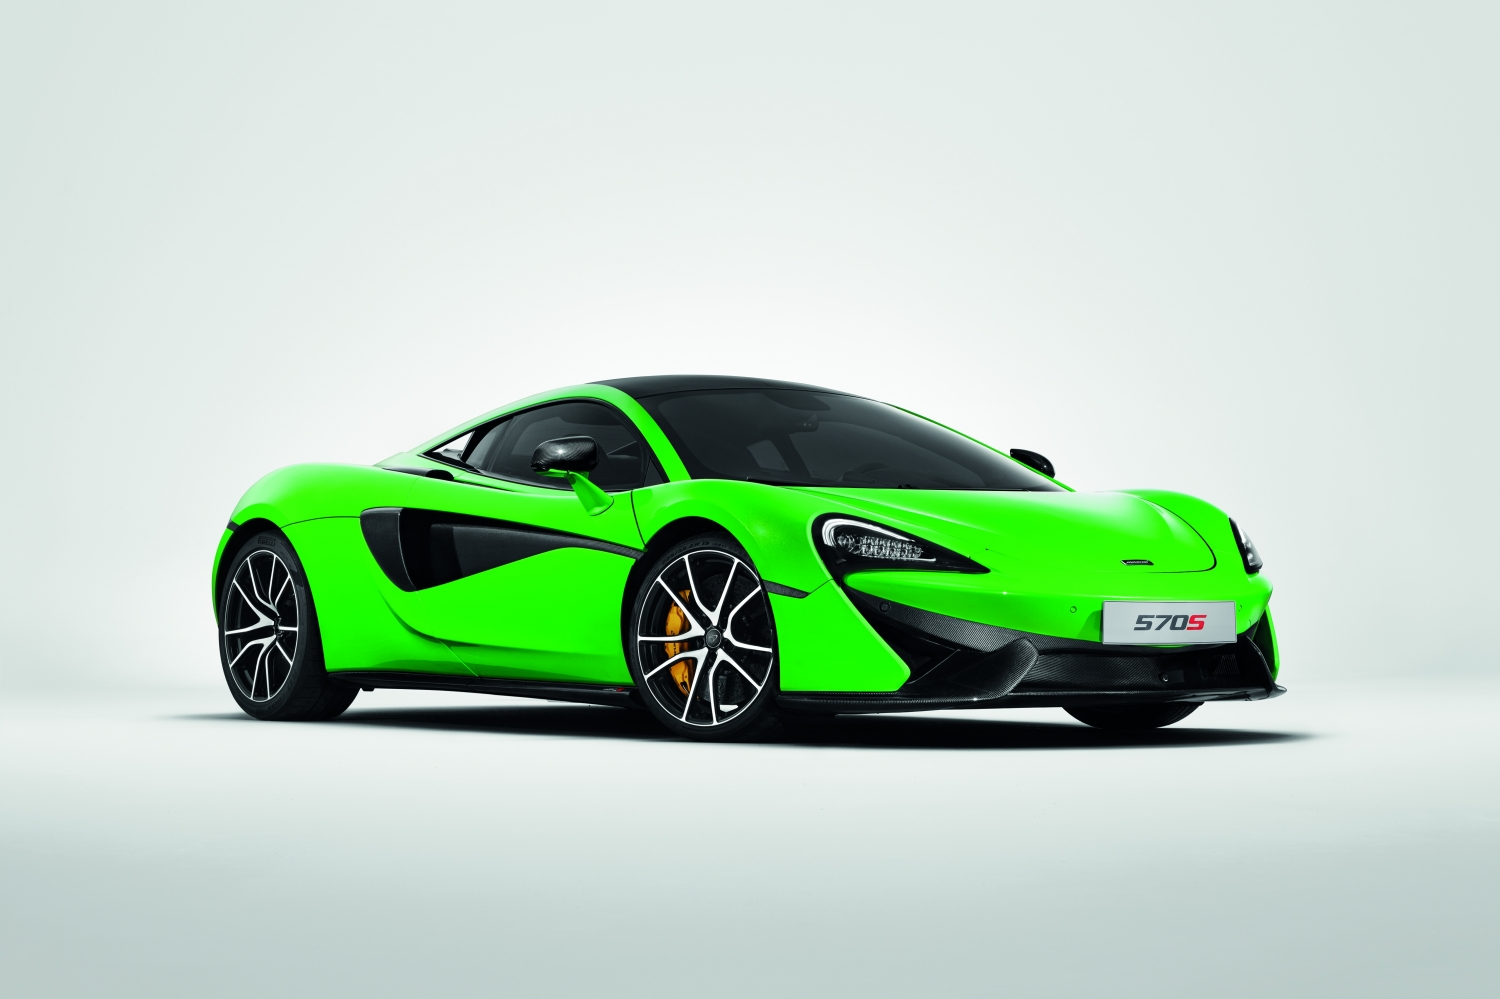 McLaren Sports Series Cars Look Hot With New Accessories